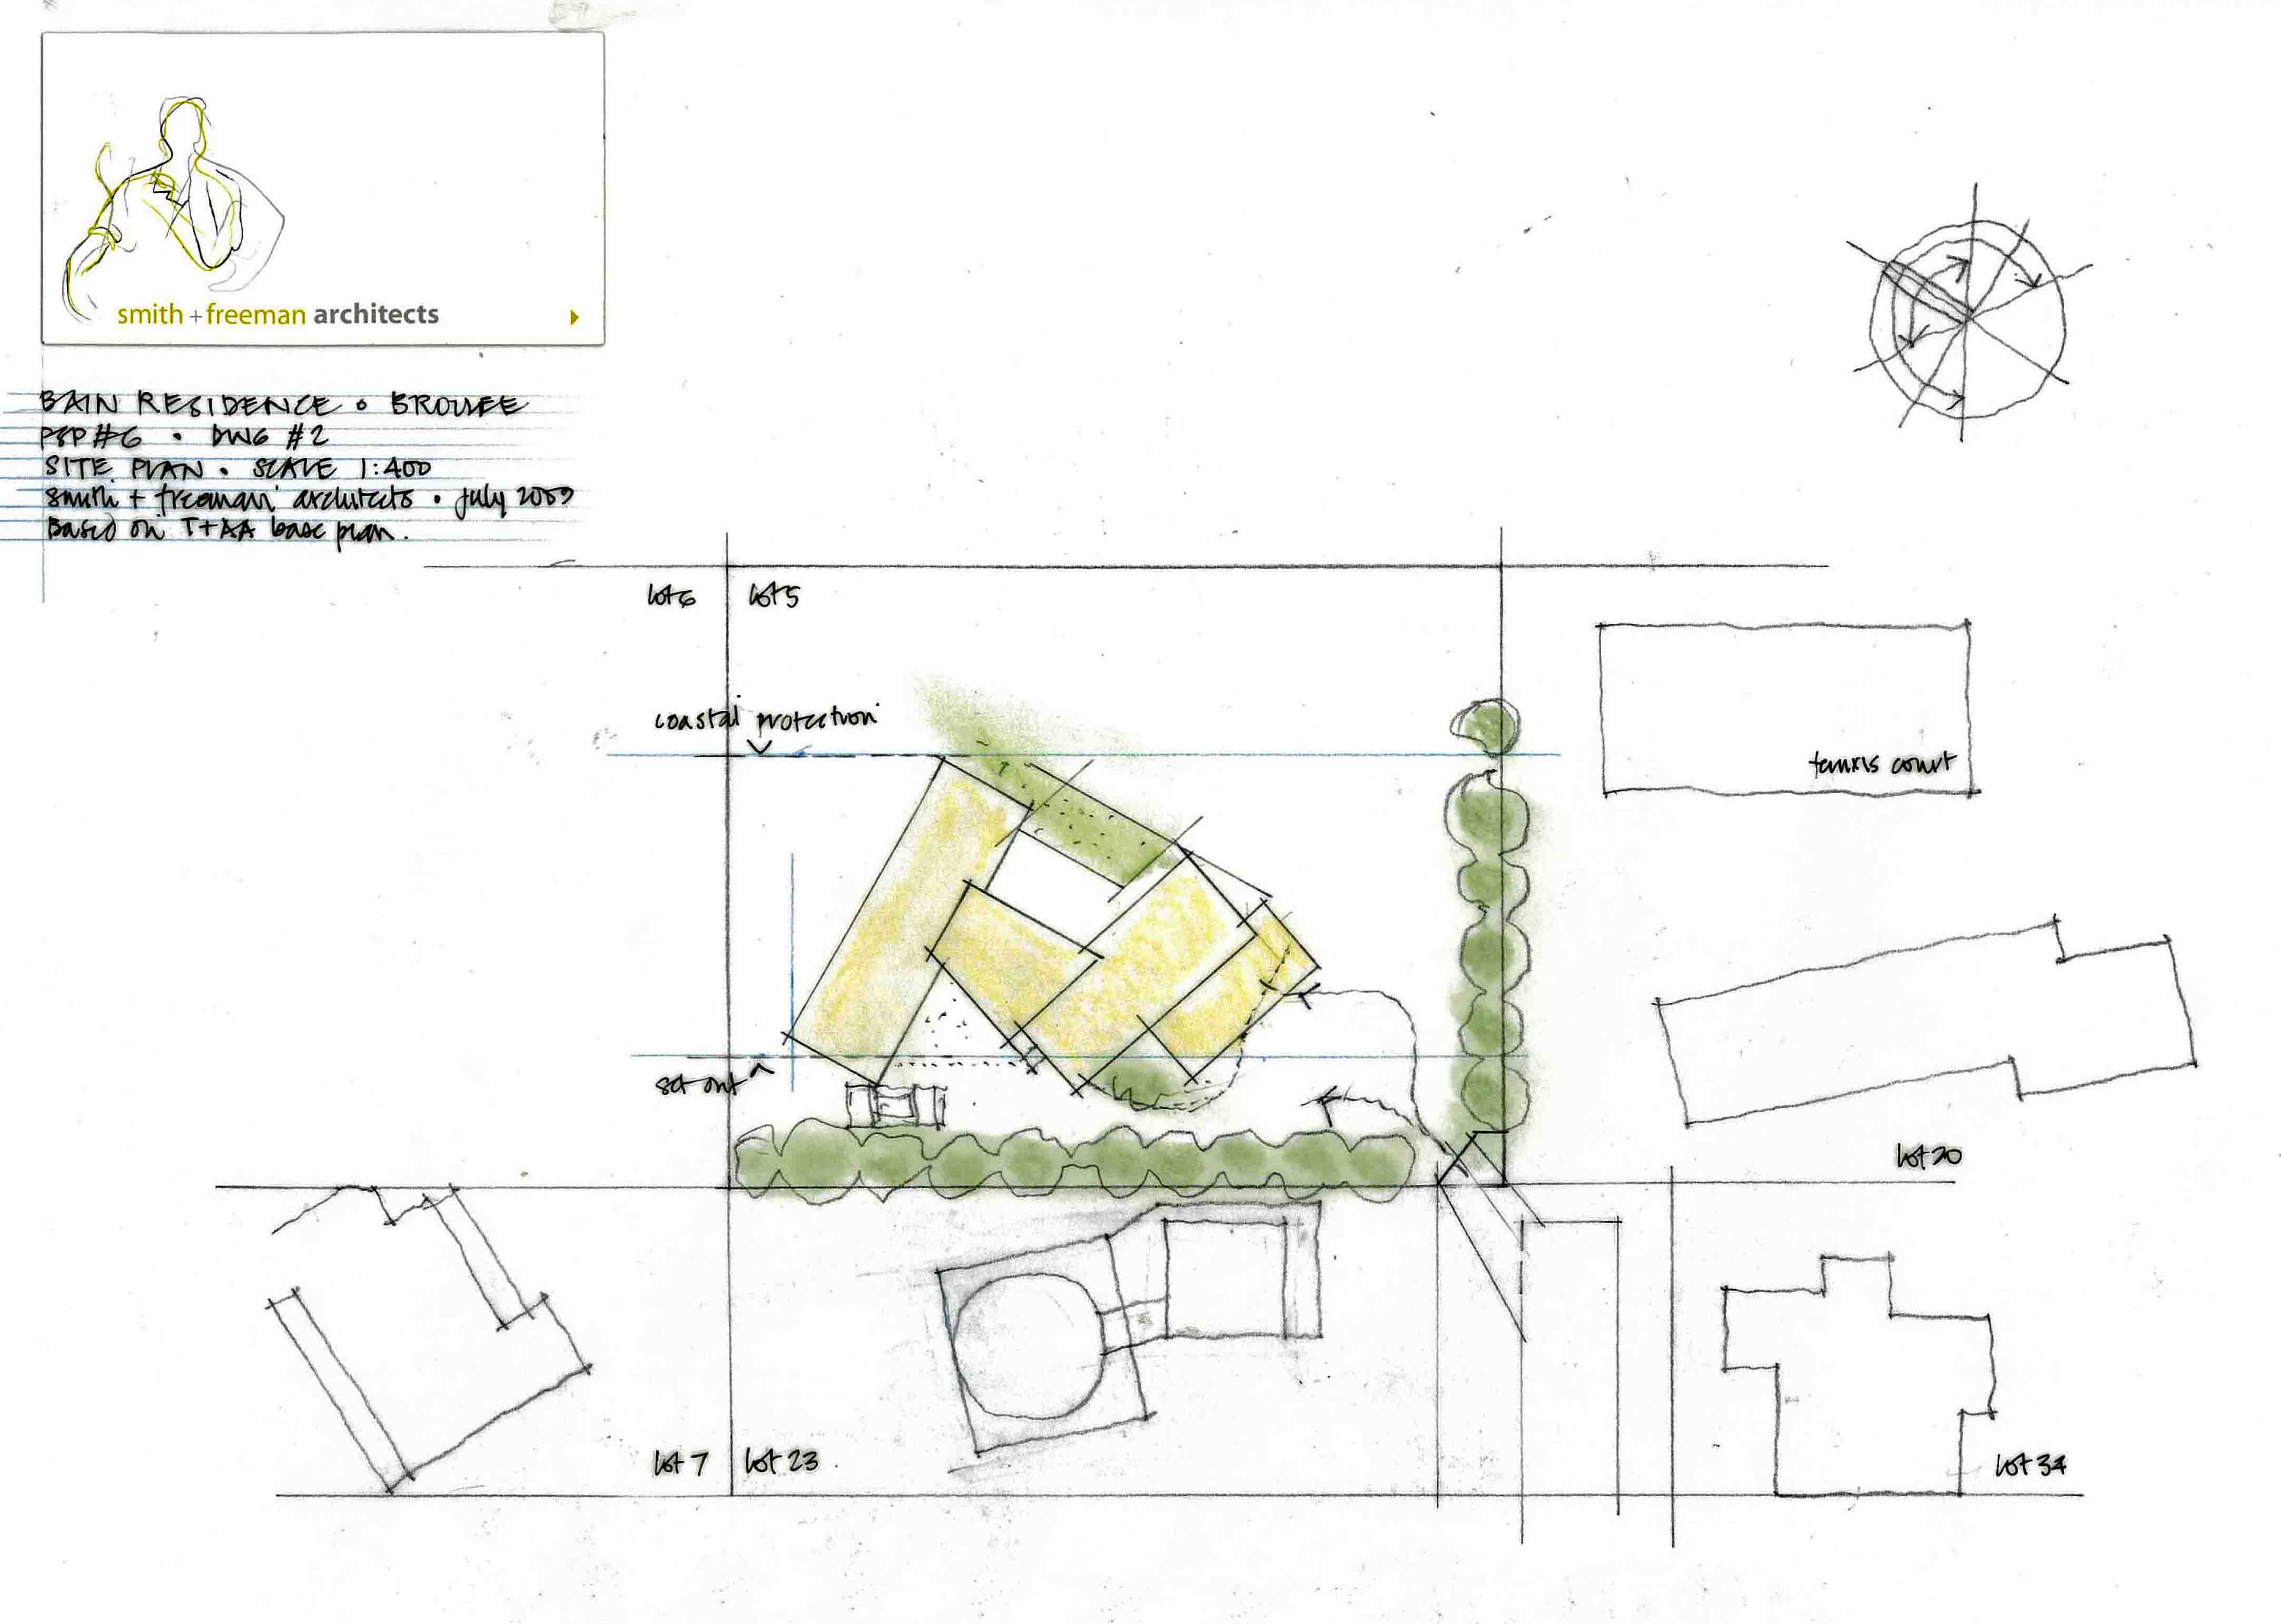 Site Plan of the Bain residence 2009